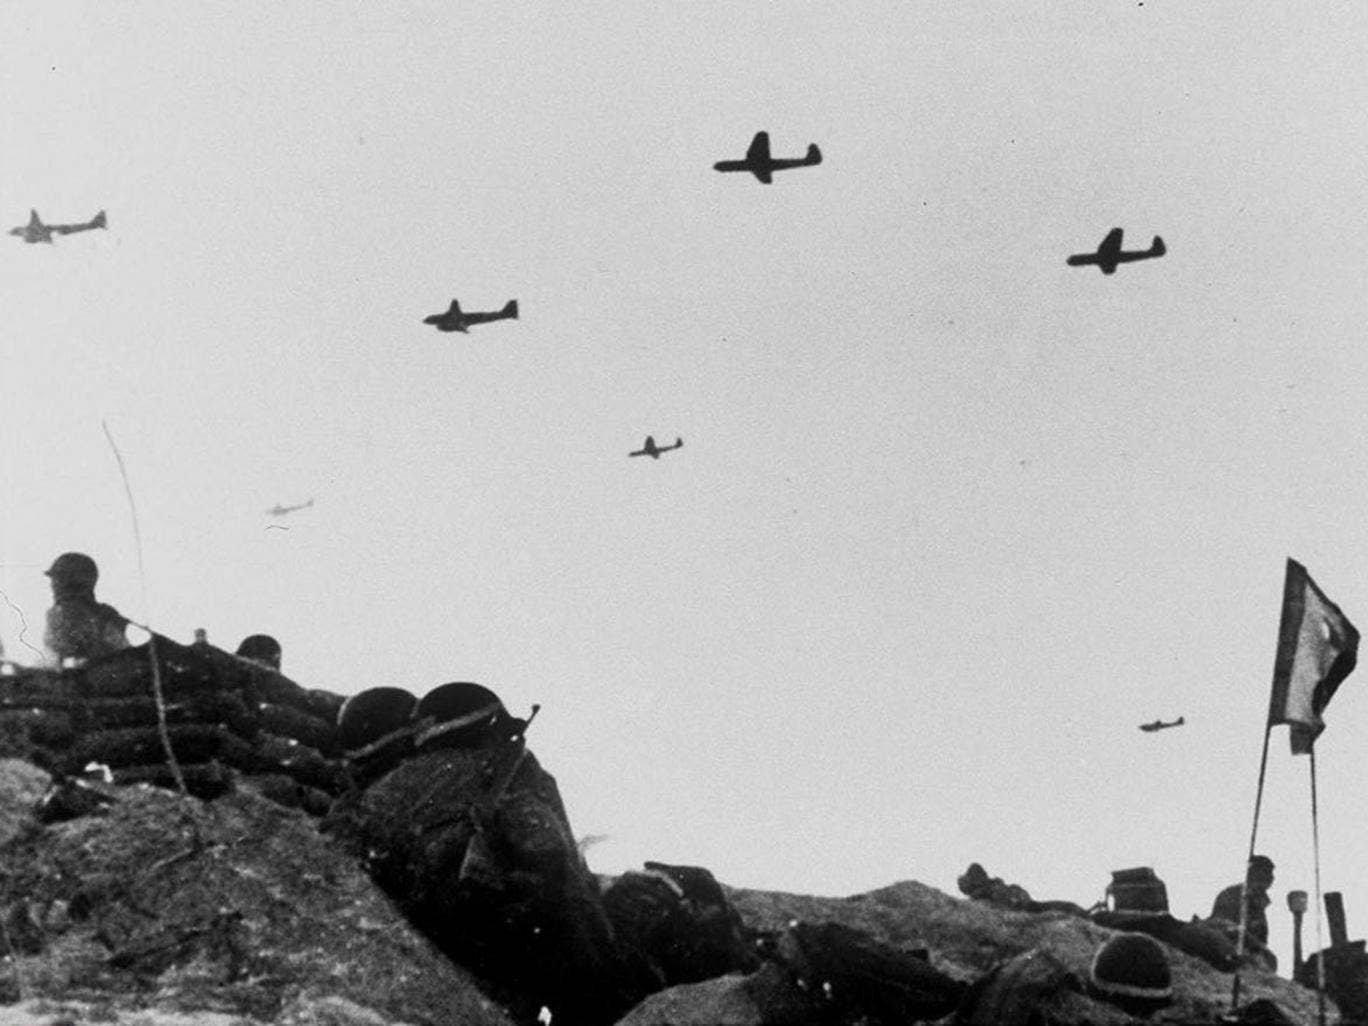 Allied aircraft fly over Normandy during the D-Day invasion in 1944